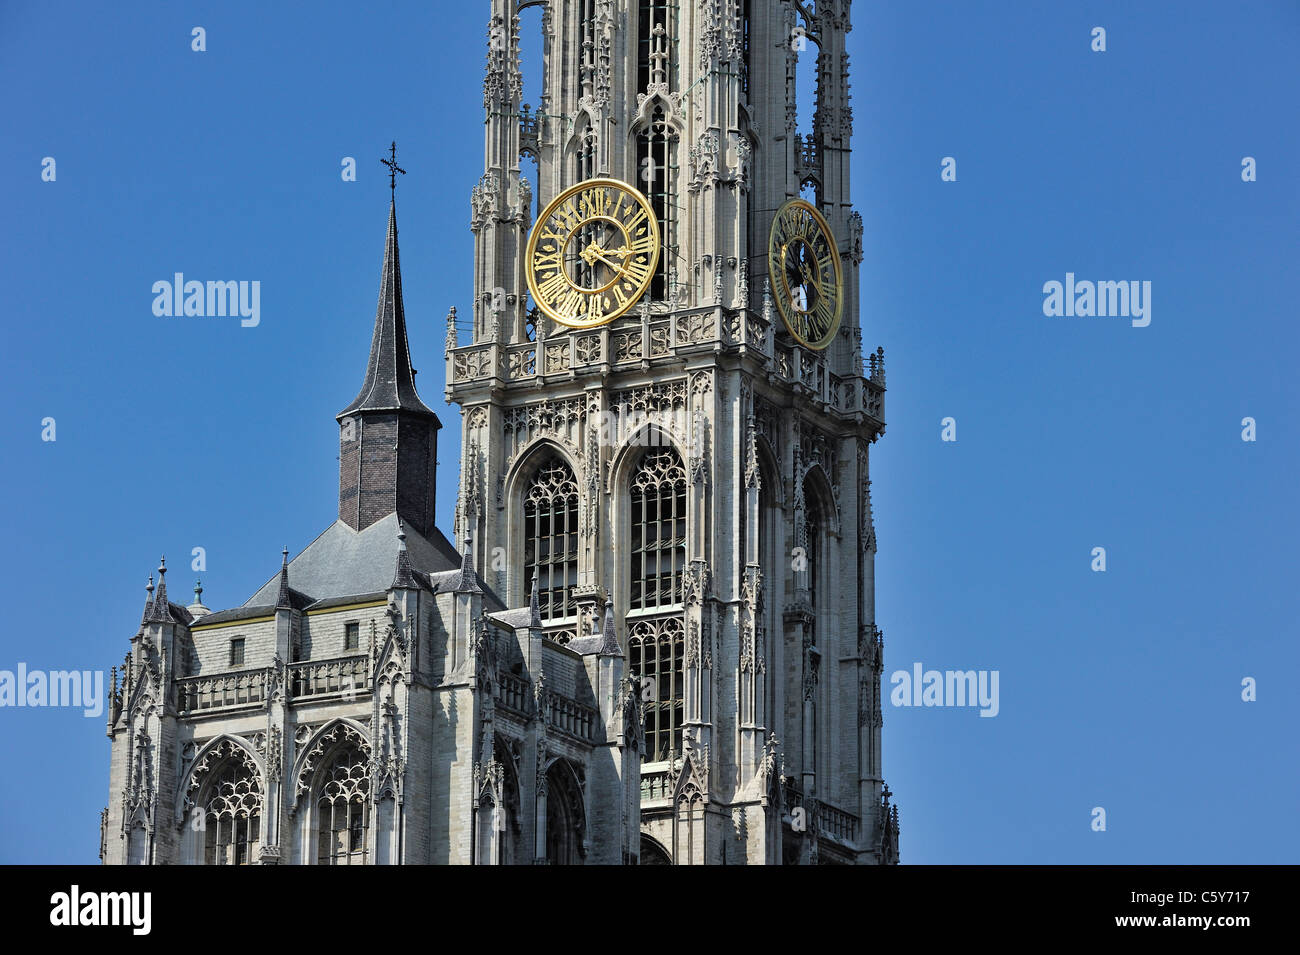 Tower of the Gothic Roman Catholic Cathedral of Our Lady in Antwerp showing flying buttresses and flamboyant tracery, - Stock Image